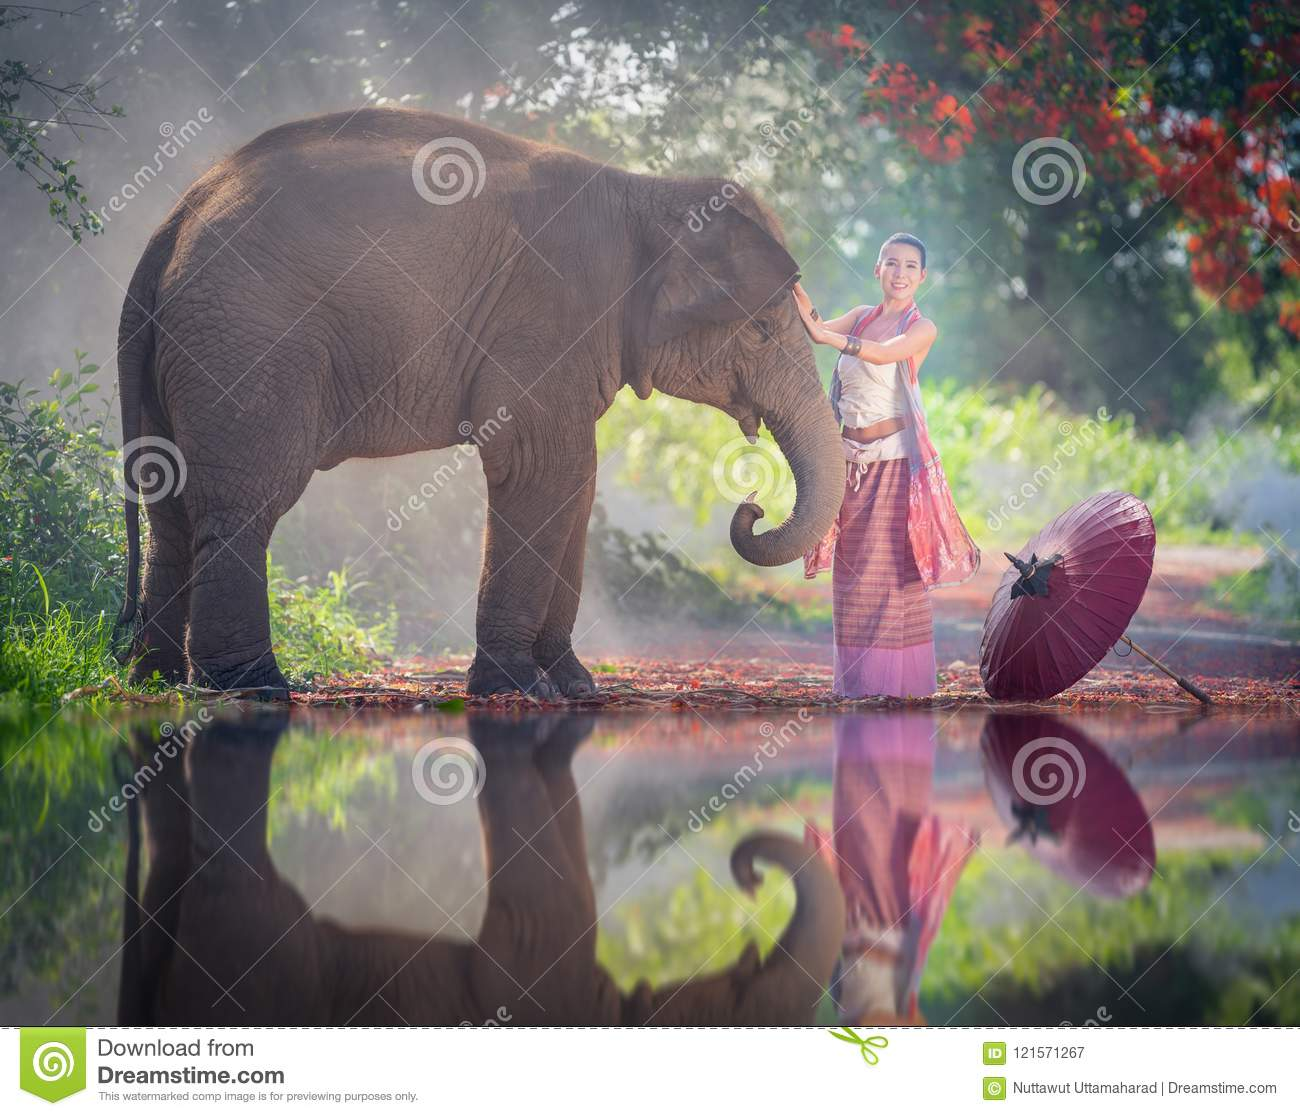 Chiang Mai, Thailand-May 13,2018: Young Asian Woman wearing Lanna traditional style costume with elephant in Chiang Mai, Thailand.